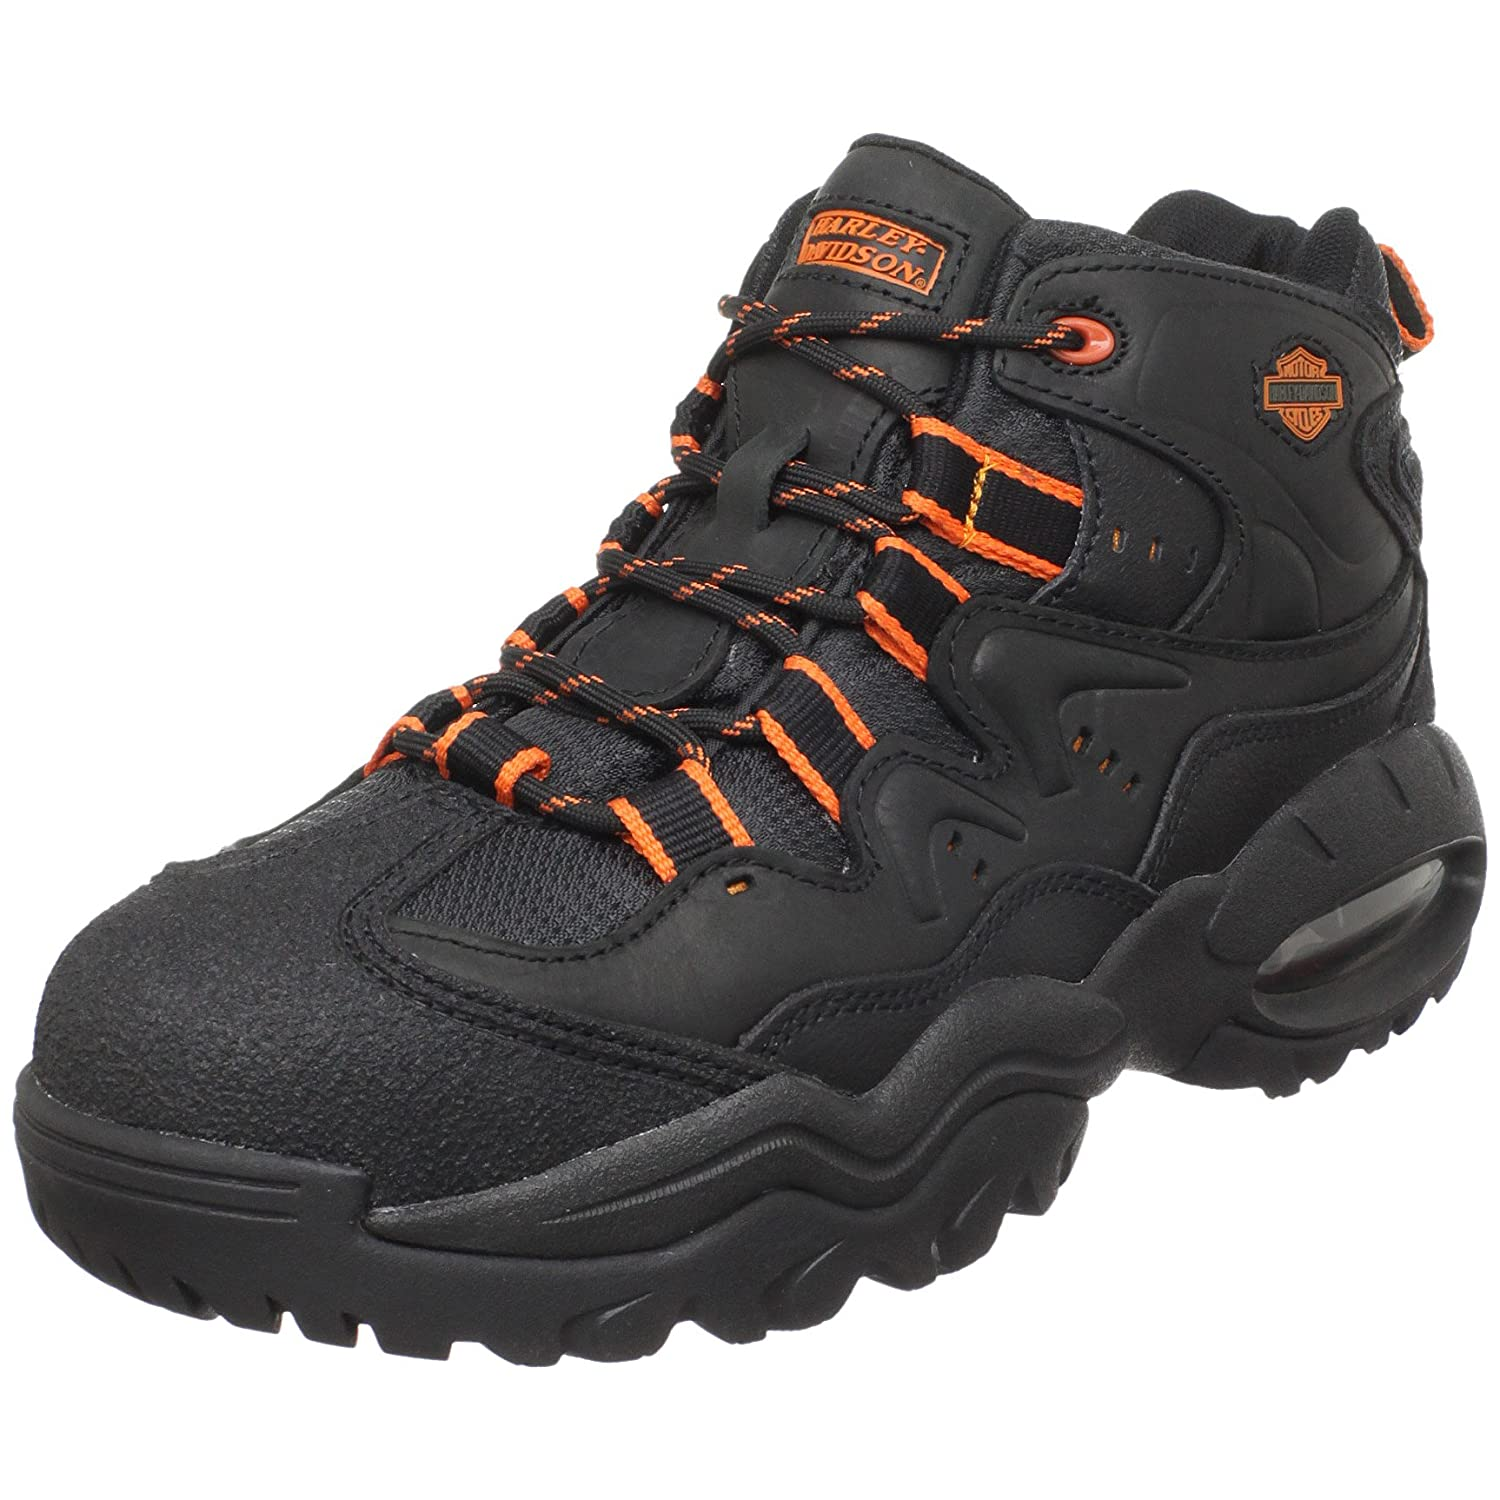 Amazon.com | Harley-Davidson Men's Crossroads II Steel Toe Hiking Boot |  Hiking Boots